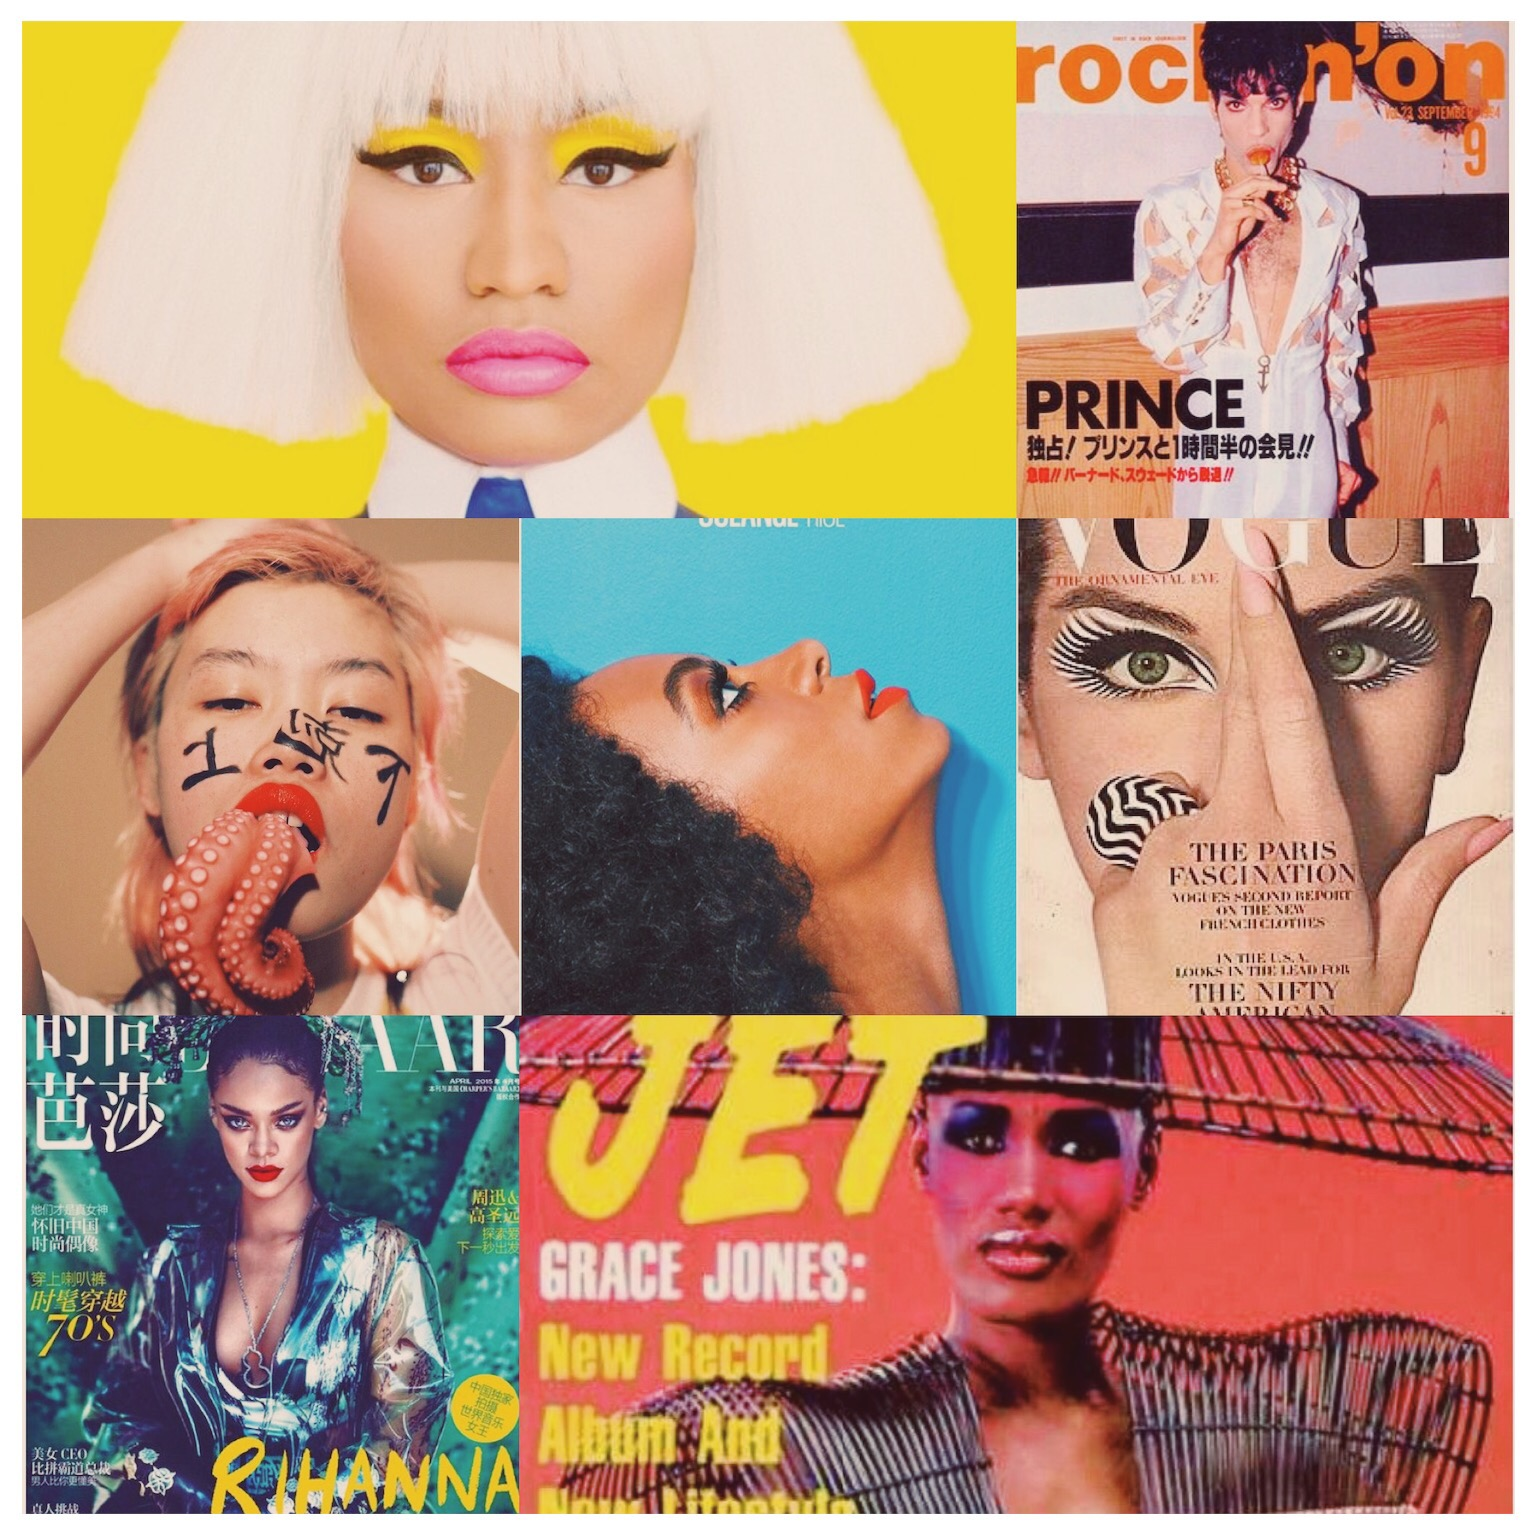 Ooh that cover! - I was asked to share some of my favourite magazine covers. Magazine covers are so inspiring. The use of colors, the expression of style, life style, art …ooh I just love it! My collage is just a small selection of magazine covers I really dig.I've always been a fan of pop art. The cover of Nicki Minaj by Gail Bichler for New York Times Magazine is all that. The use of bold bright colours, her hair and make up.In the selection of my favourite magazine covers it showed that I obviously like covers which are humorous and intriguing. As the cover with the aesthetic mutant. Unfortunately I don't know who shot the picture. If you do please let me know. He/She deserves a credit!I also selected the cover with Solange cause her sense of style and art is so pure and authentic. Love all her art work and visuals and that also goes for her music.I like everything about Rihanna on the cover of China's Harper Bazaar. The combination of colours, her make up which makes her look Asian, her clothing, the graphics (I'm a fan of Asian graphics). You should also have a look at the feature in the magazine. I find it very inspiring.Of course miss Grace Jones had to be part of my collage. In my total selection of fav covers I had to restrict myself to select only three or four covers with Grace Jones. She is my all time inspiration when it comes to style and appearance. She embodies everything I find inspiring: art, attitude, aesthetics, humour, power, boldness…the list is endless! Haha…